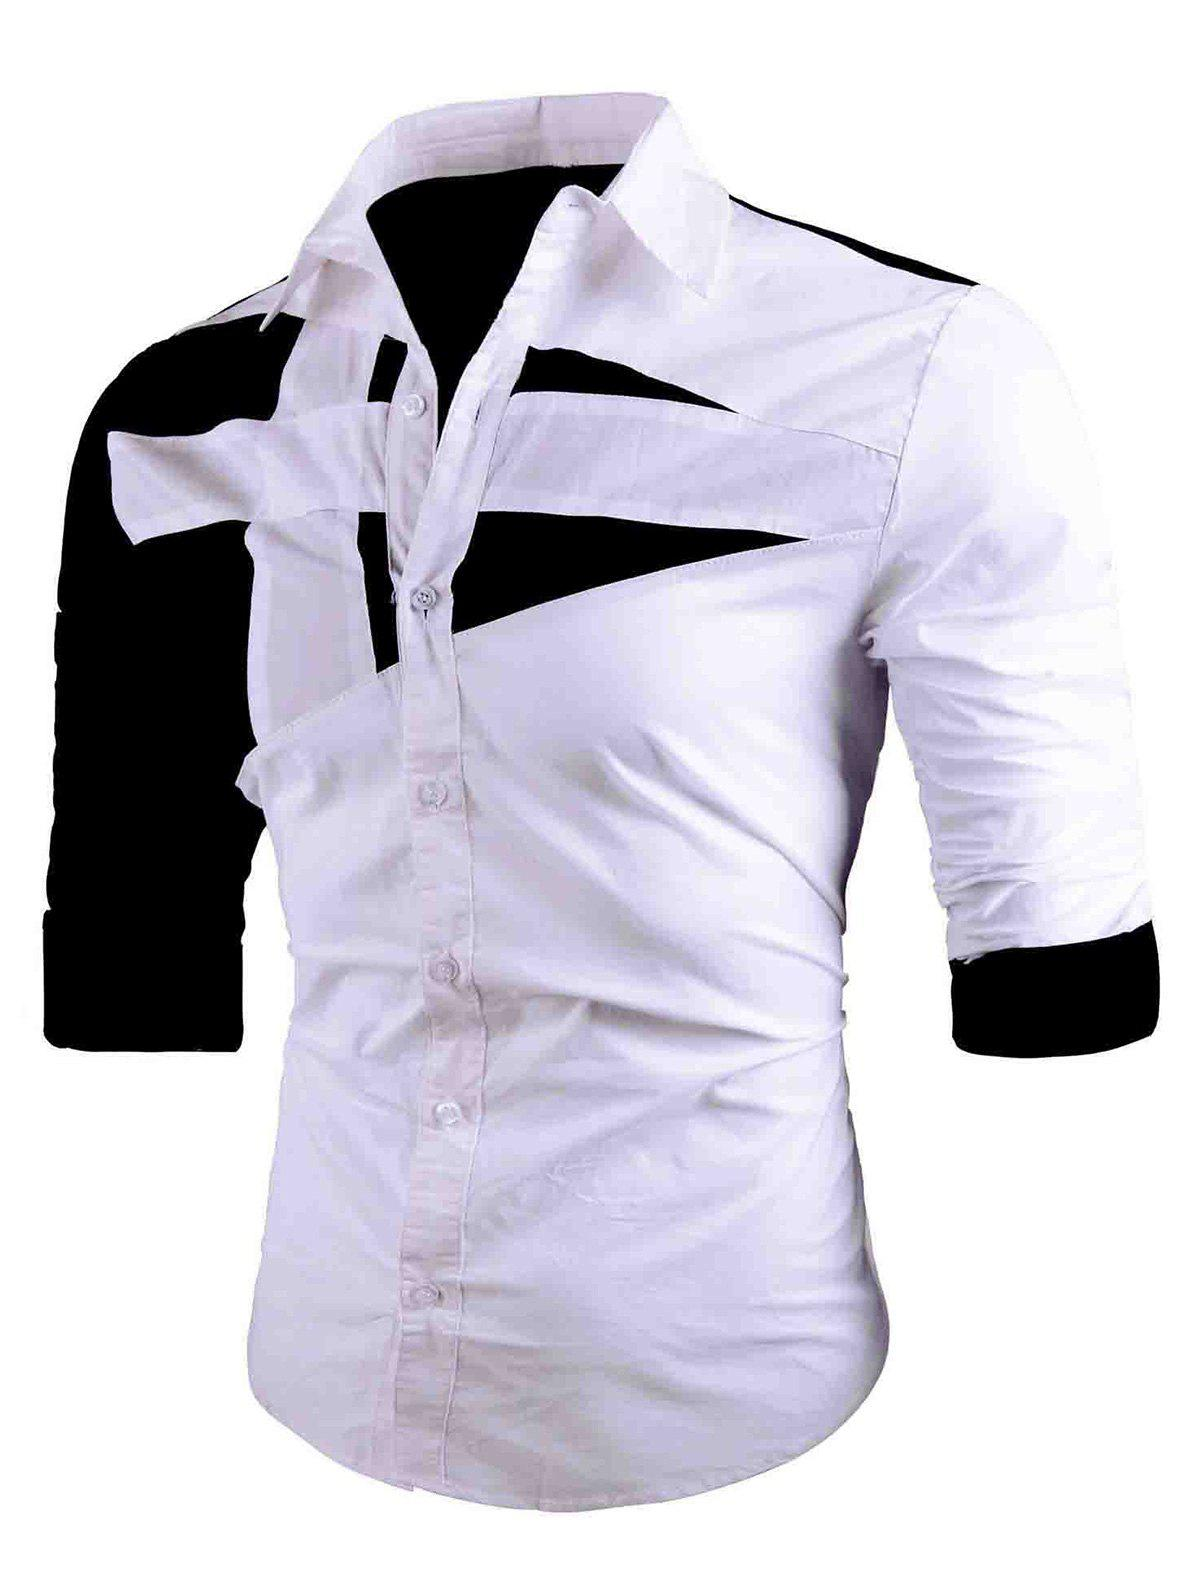 Button Up Two Tone Long Sleeve Shirt button up two tone work shirt